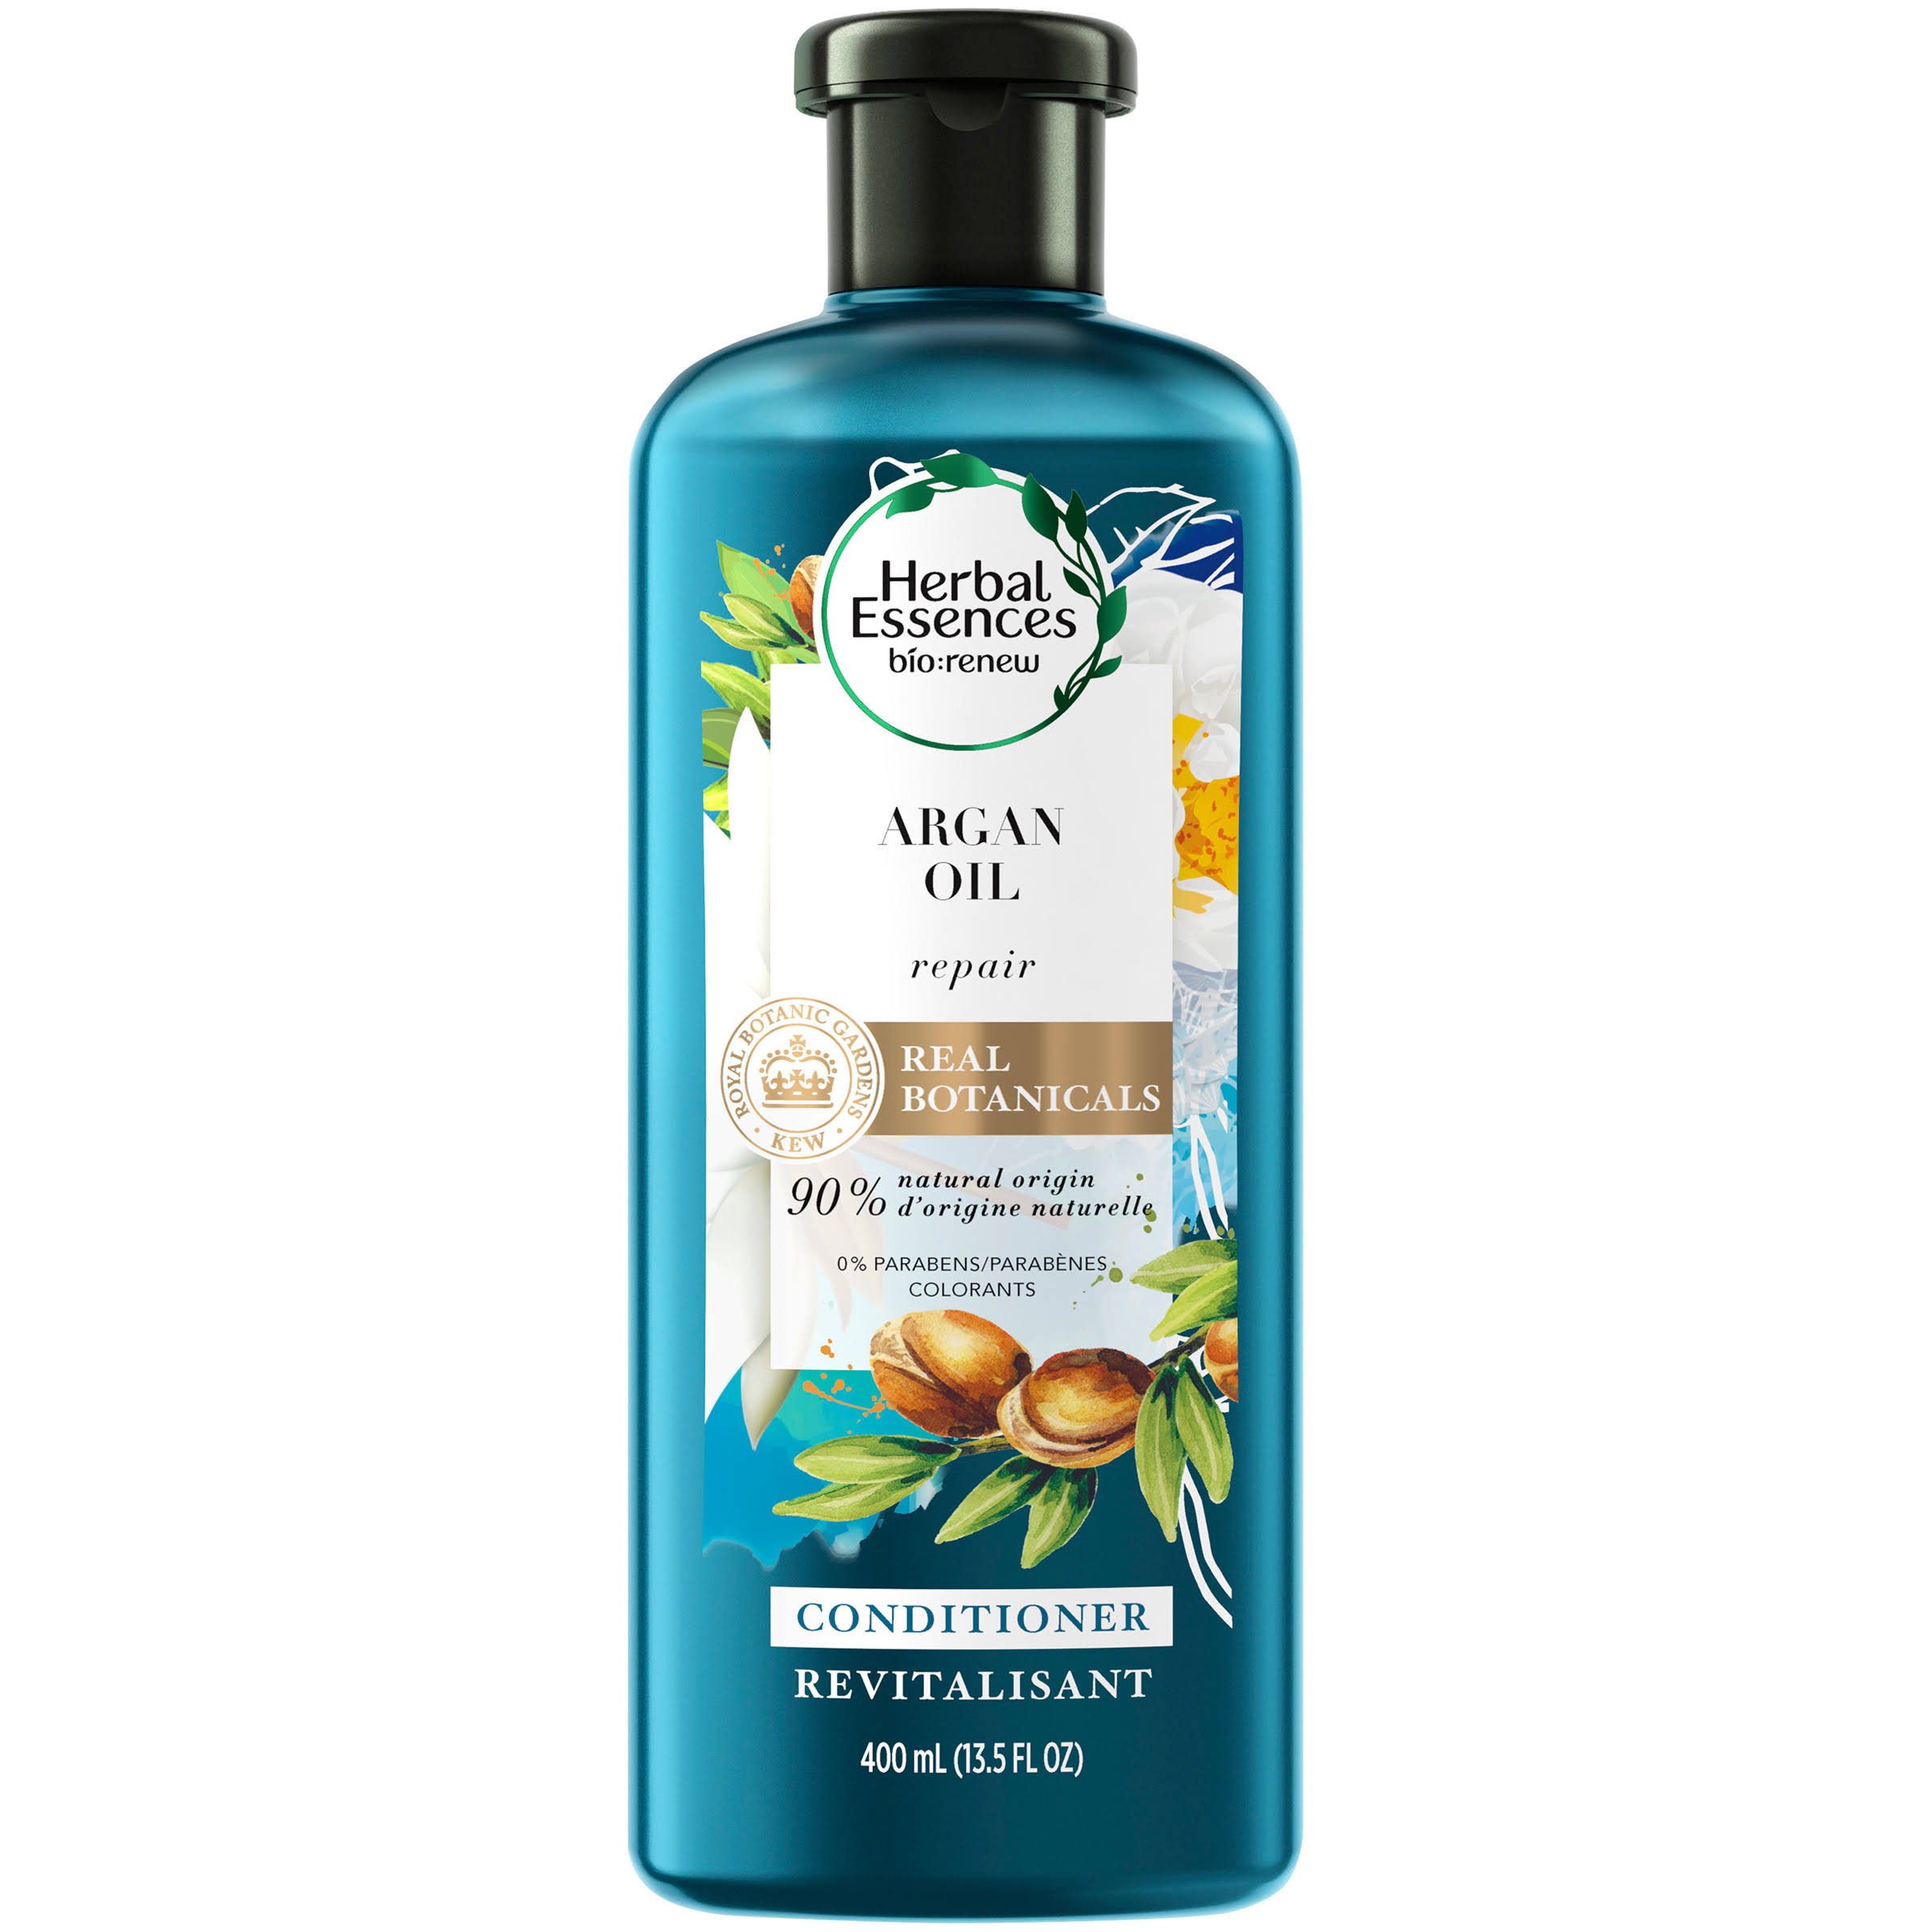 Herbal Essences Argan Oil of Morocco Conditioner - 13.5oz